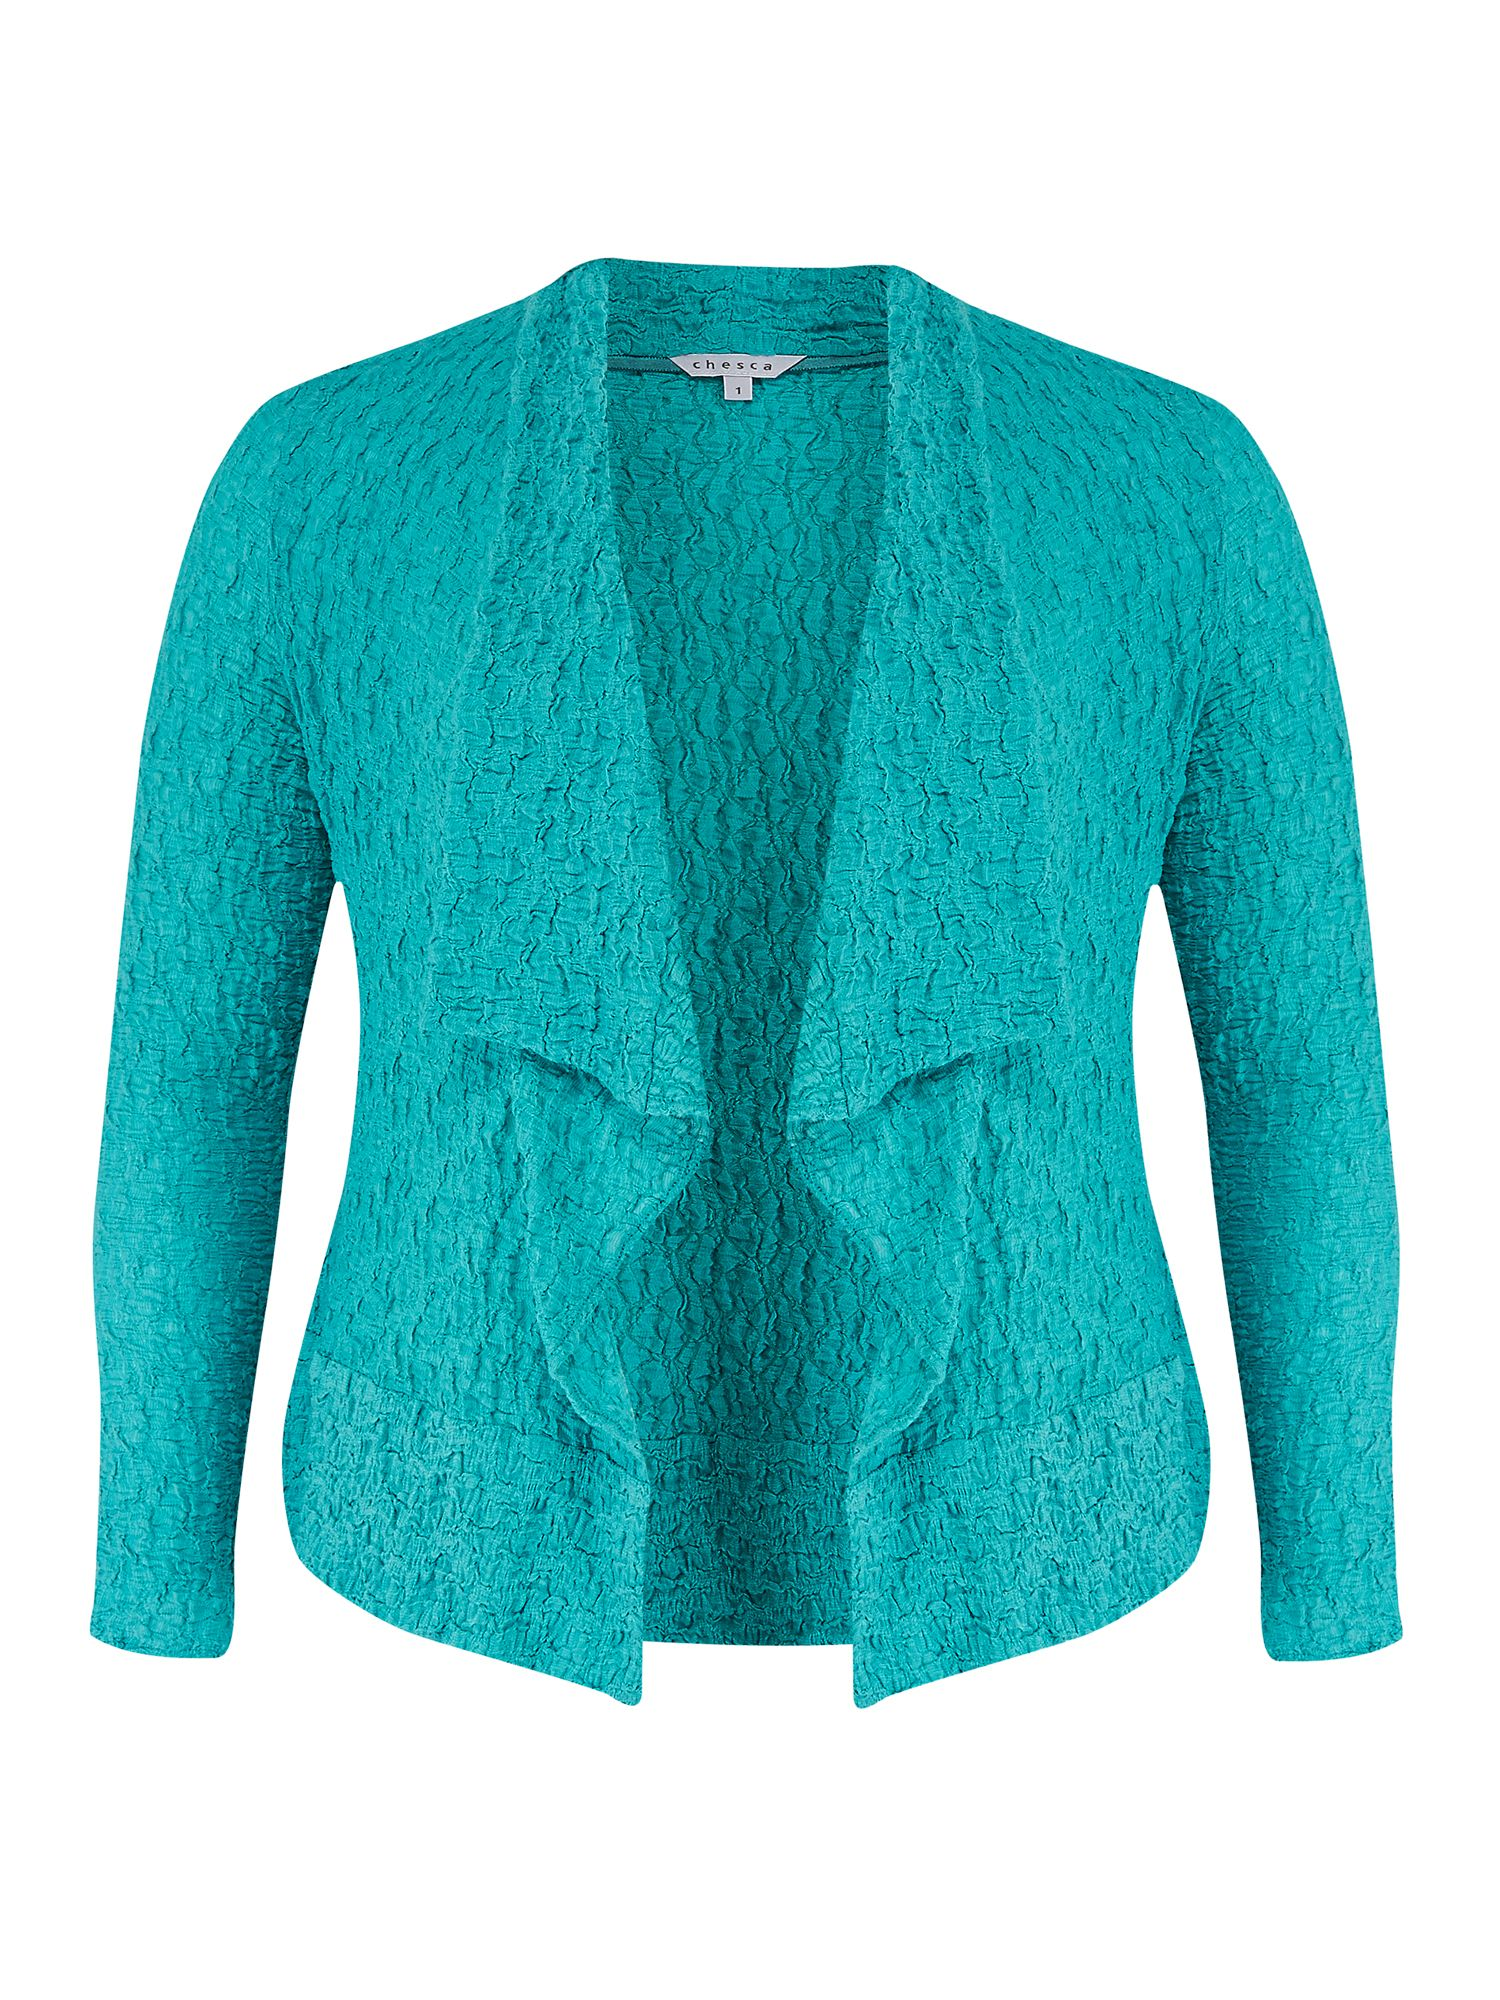 Chesca Bubble Jacket, Turquoise